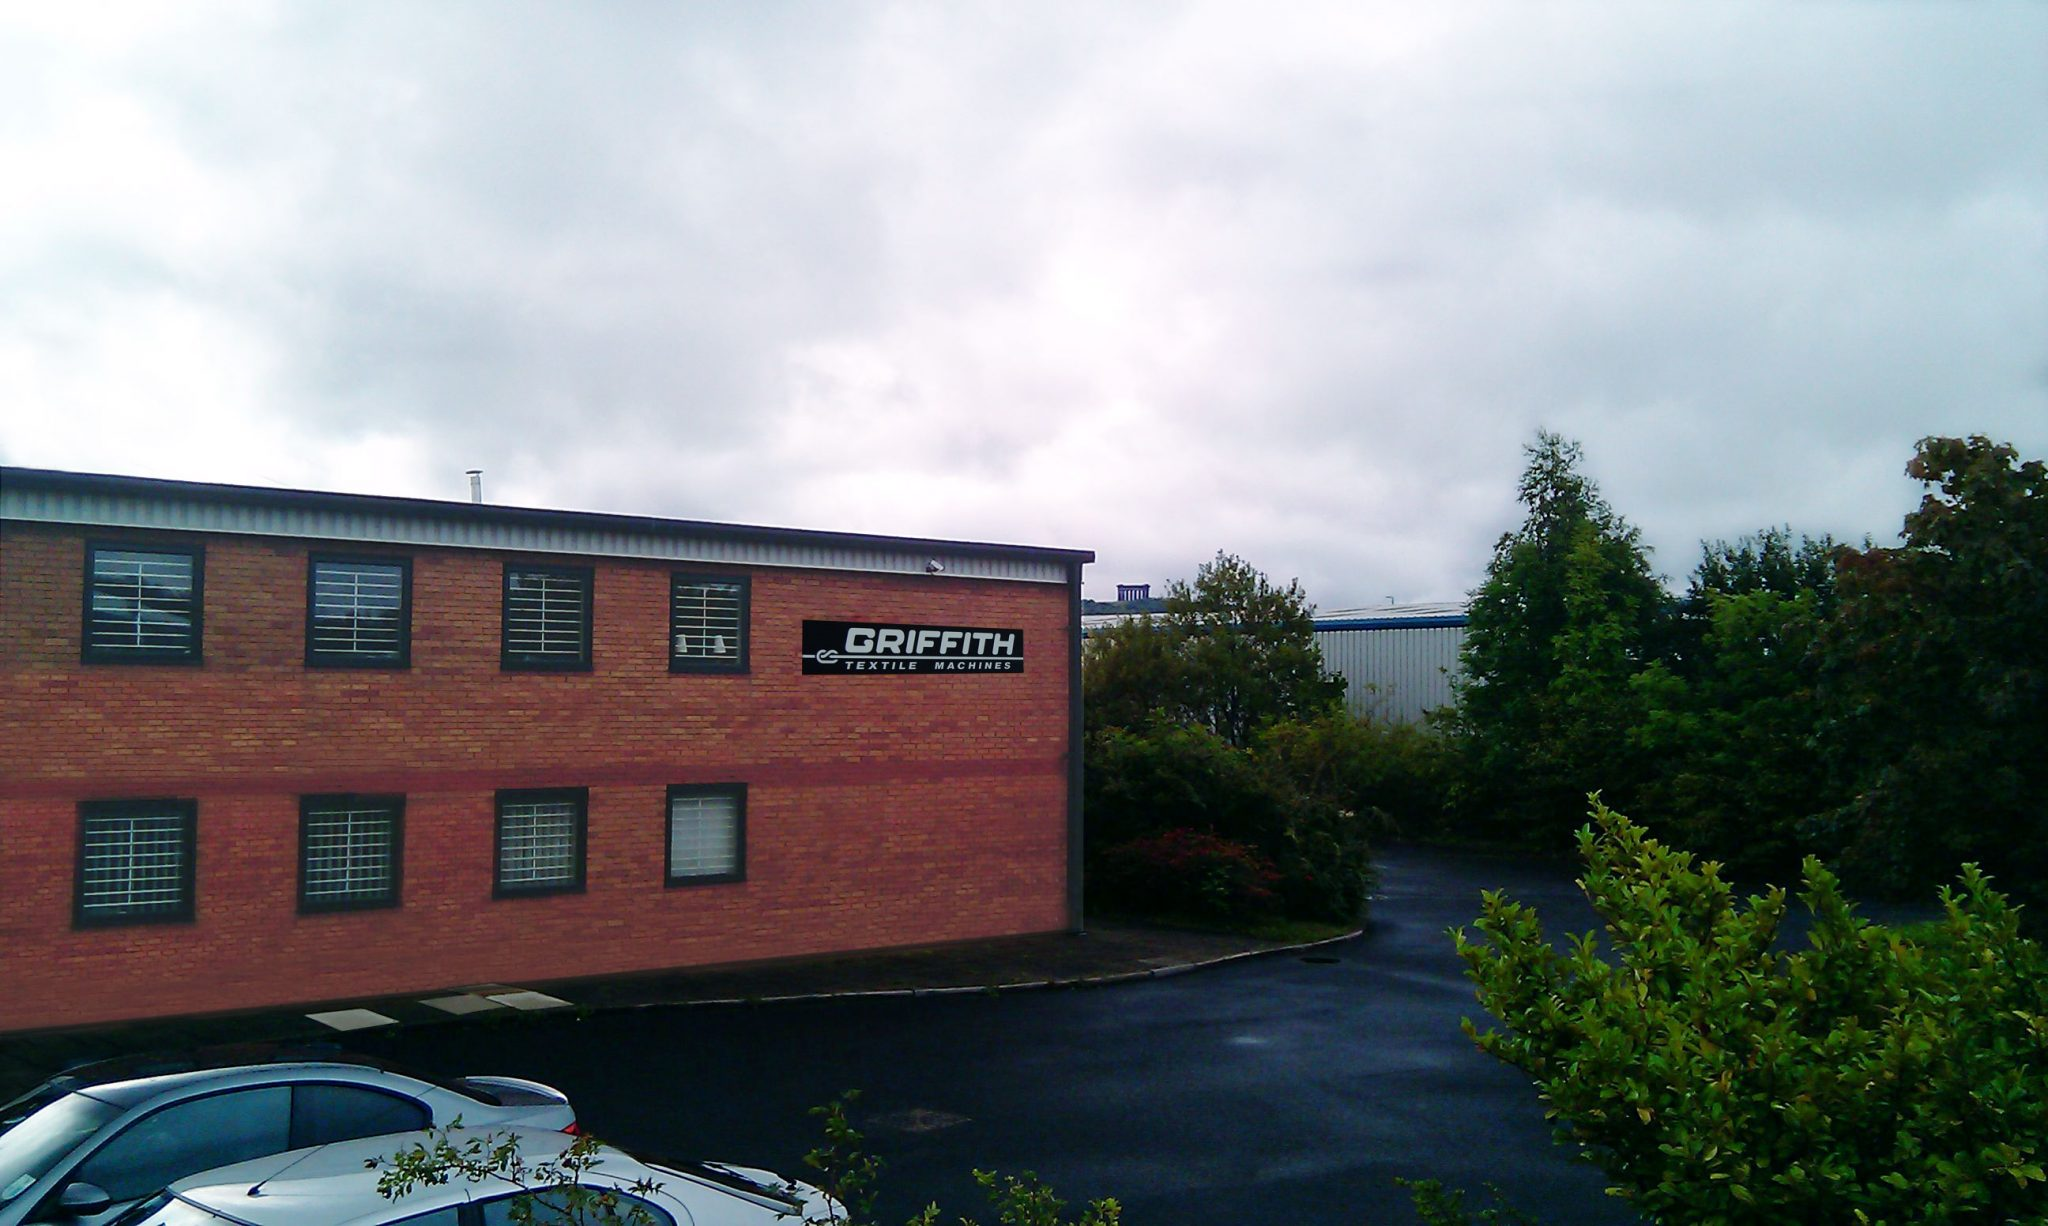 Ulster Carpets Purchases Griffith Textile Machines News